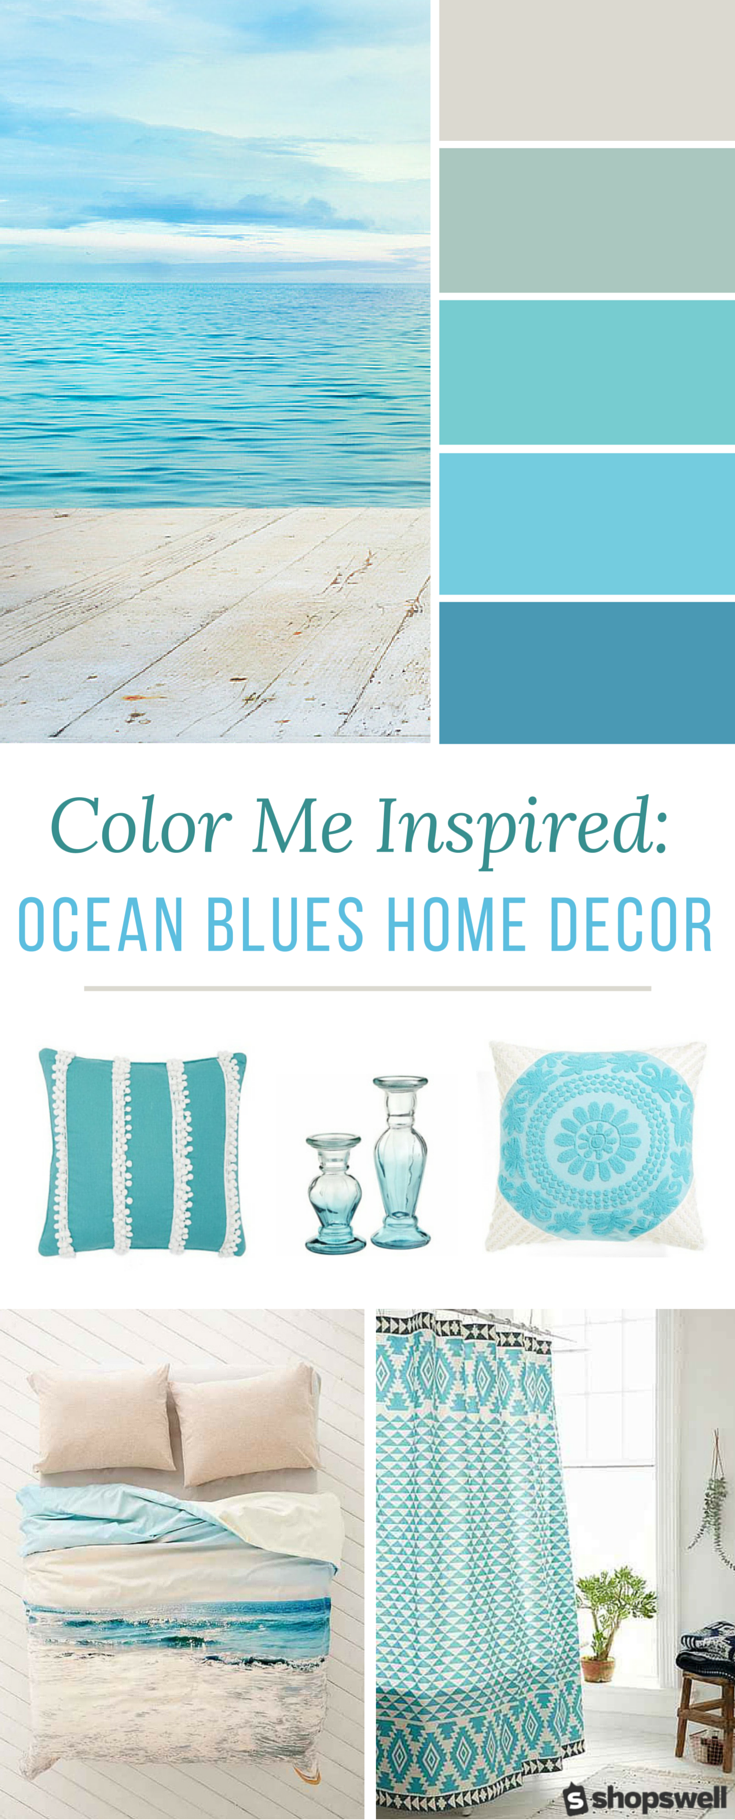 Genial Blue Ocean Tones Are The Inspiration Behind This Summer Home Decor  Collection. Decorate Your Beach House Or Simply Give Your Living Space A  Warm Weather ...